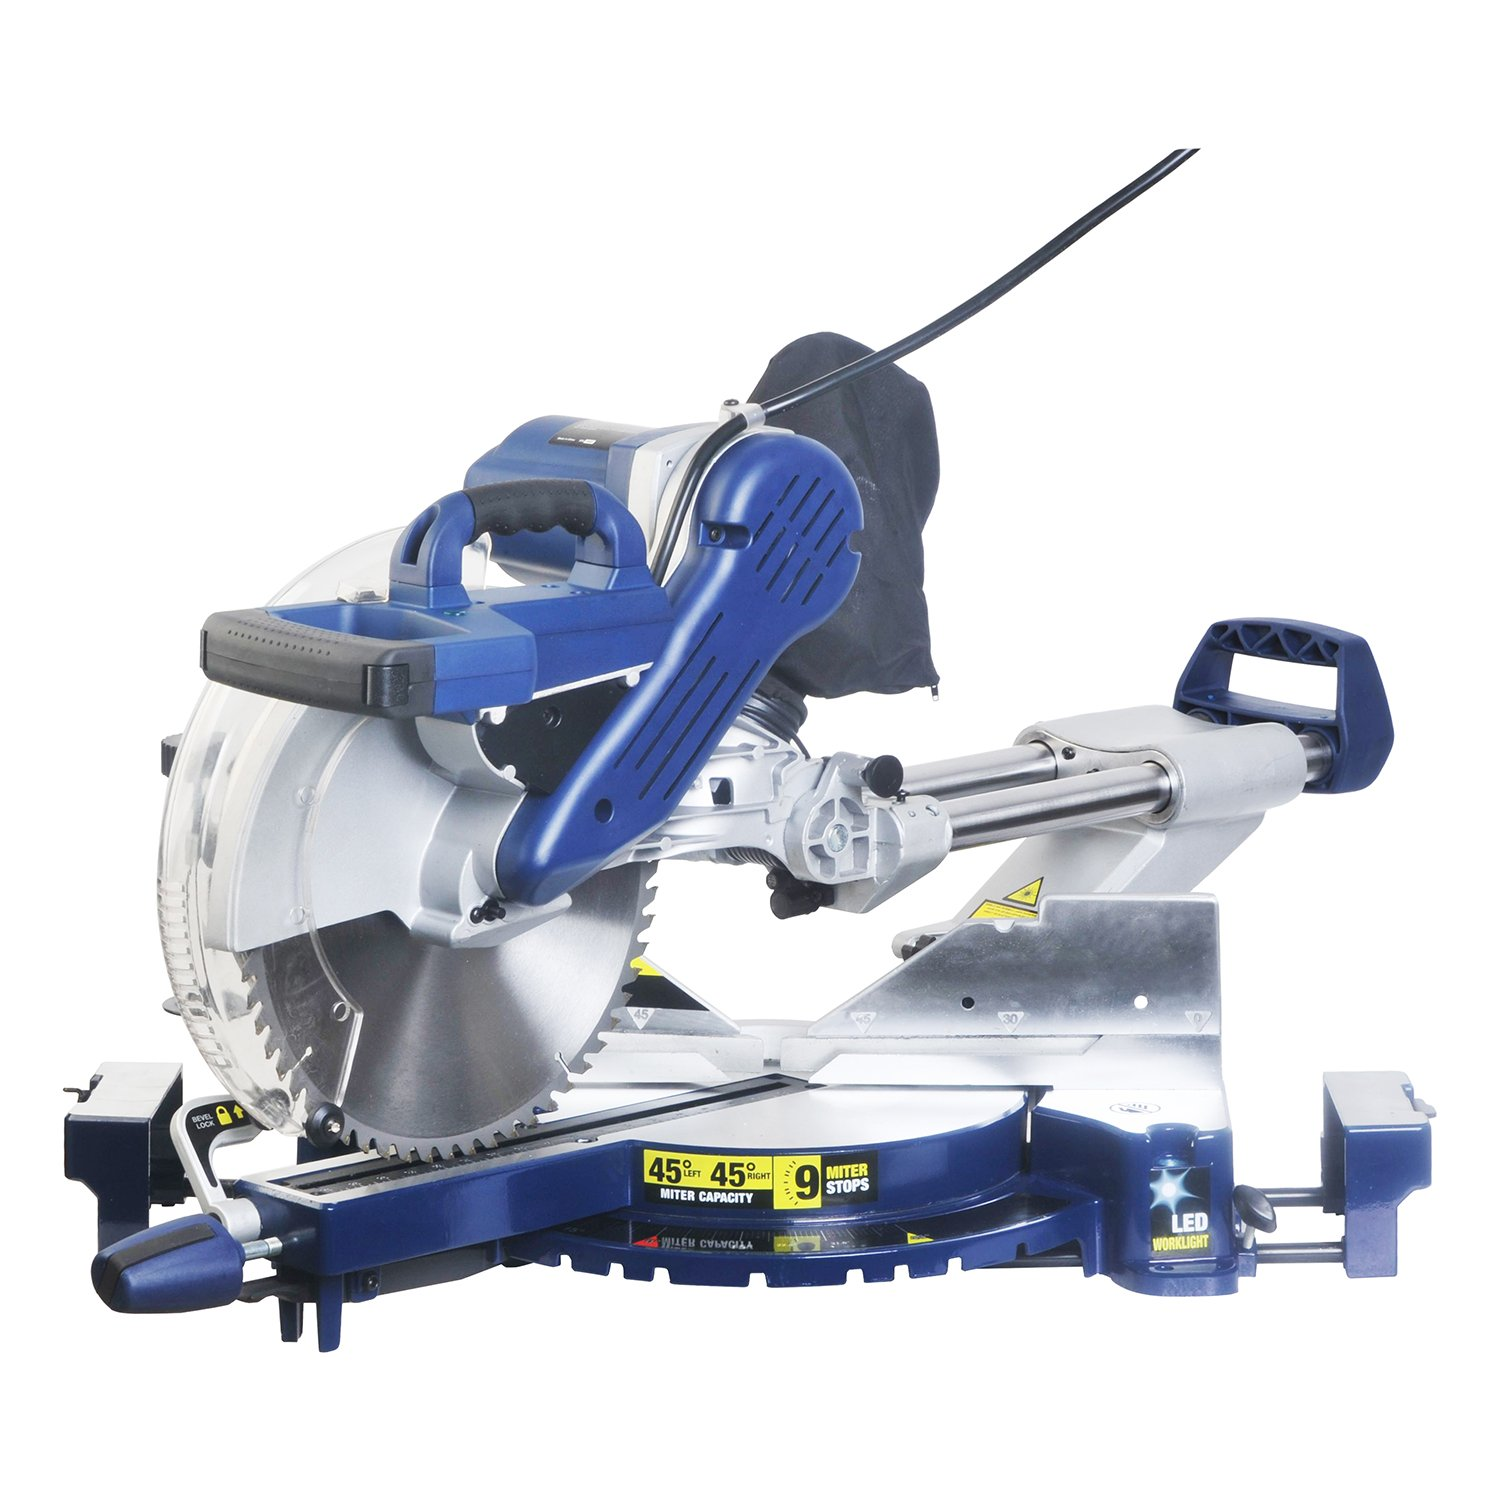 Wonlink 15 Amp 12'' Dual Bevel Sliding Compound Miter Saw with Laser and LED Work Light by Wonlink (Image #9)